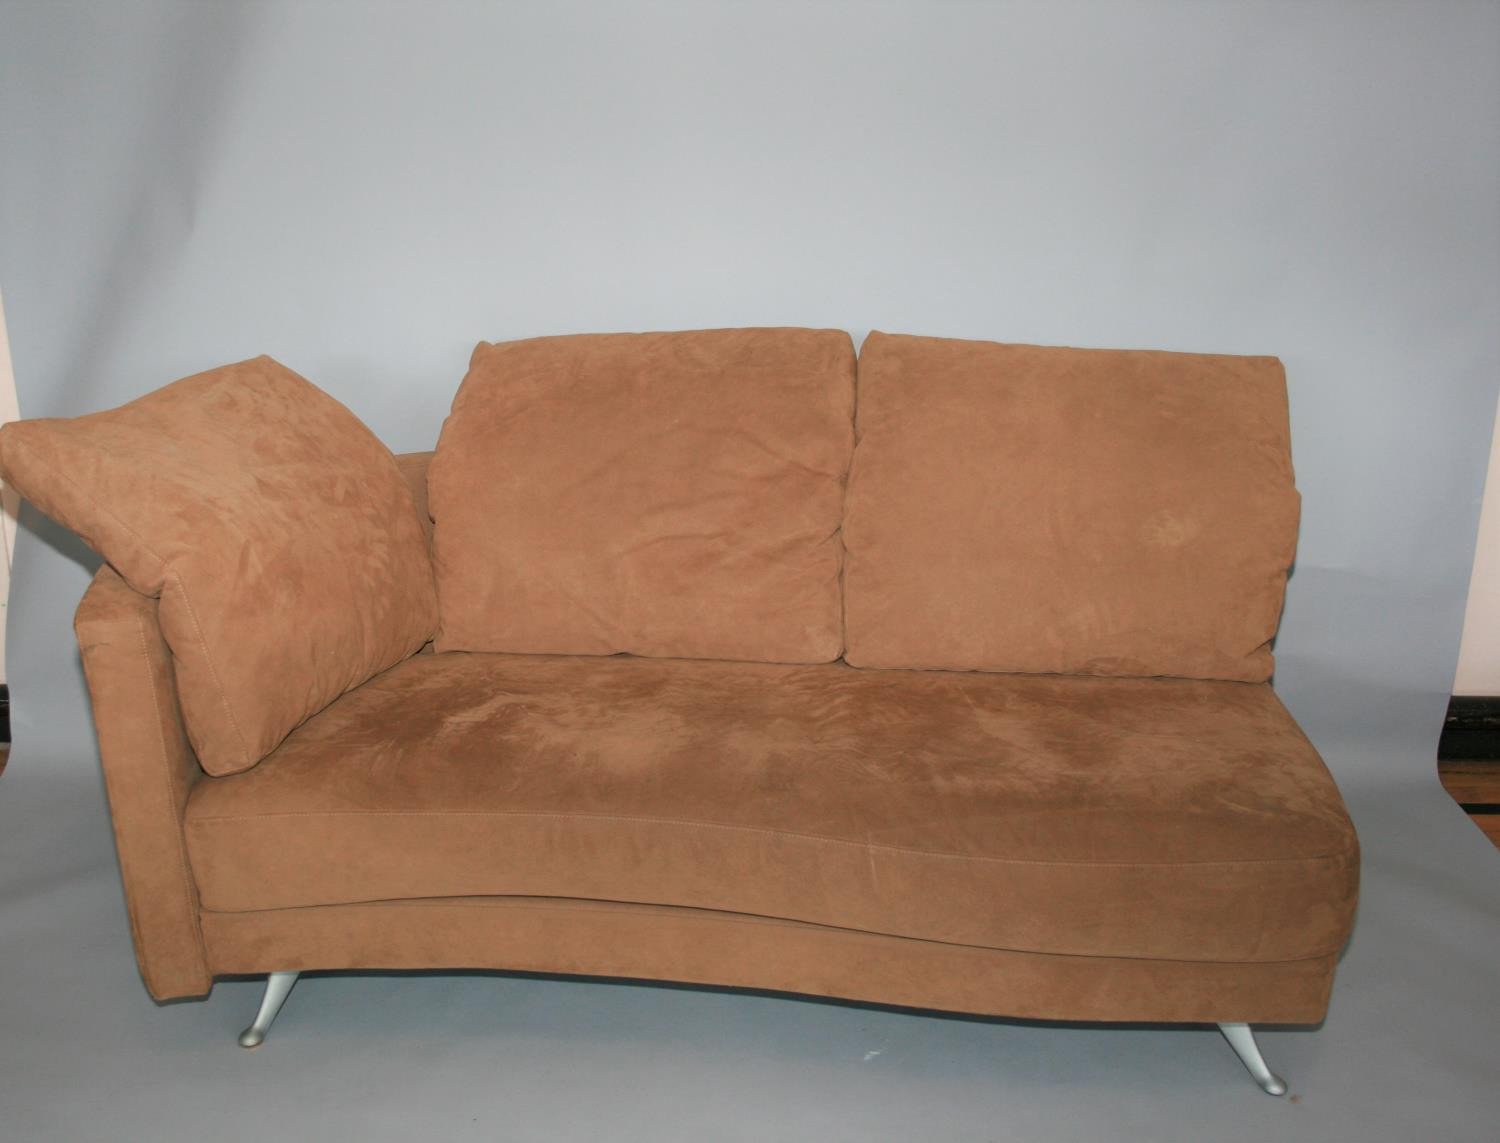 Rolf Benz suede covered sofa and matching foot stool 180 W x 70 H x 85 D - Image 2 of 3